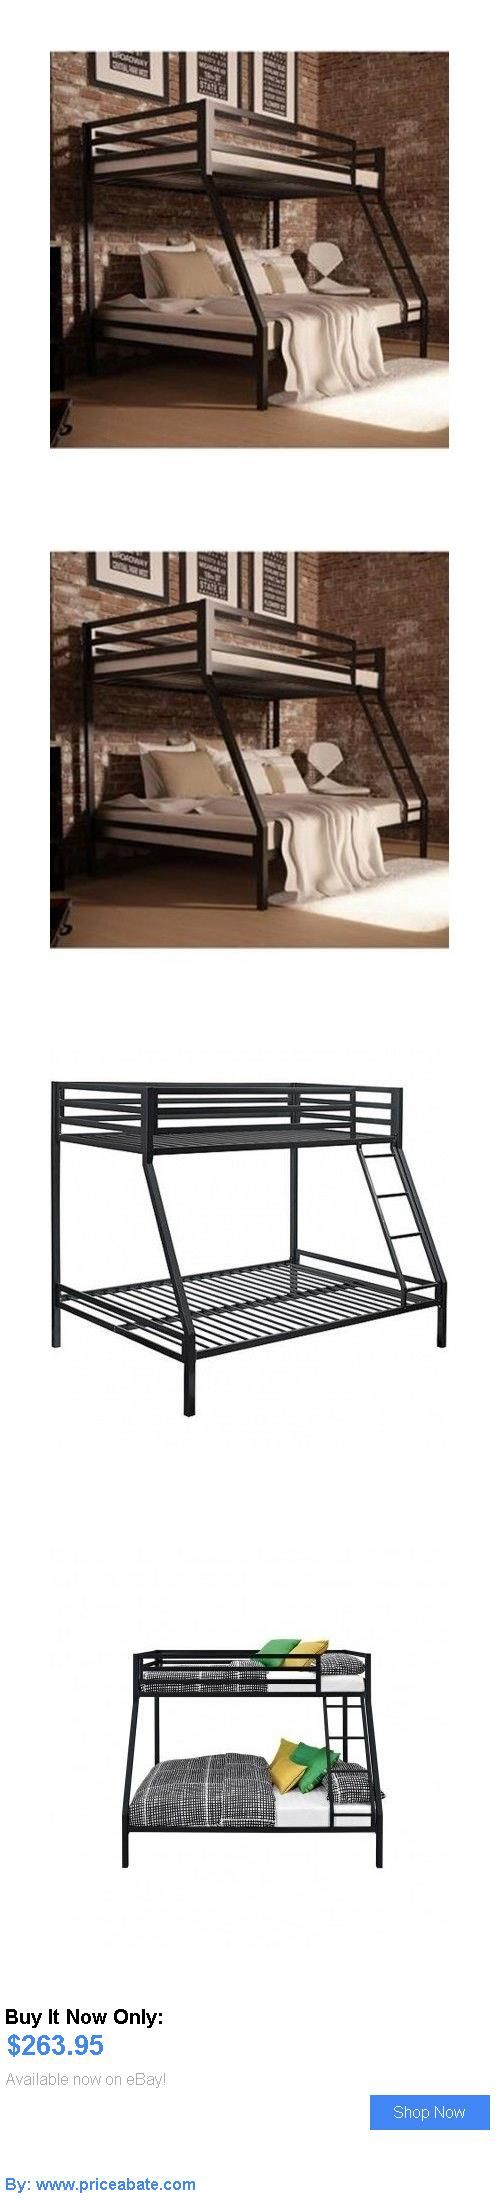 Kids Furniture: Bunk Beds With Twin Over Full Black Metal Bedroom Furniture Kids Boys Ladder New BUY IT NOW ONLY: $263.95 #priceabateKidsFurniture OR #priceabate